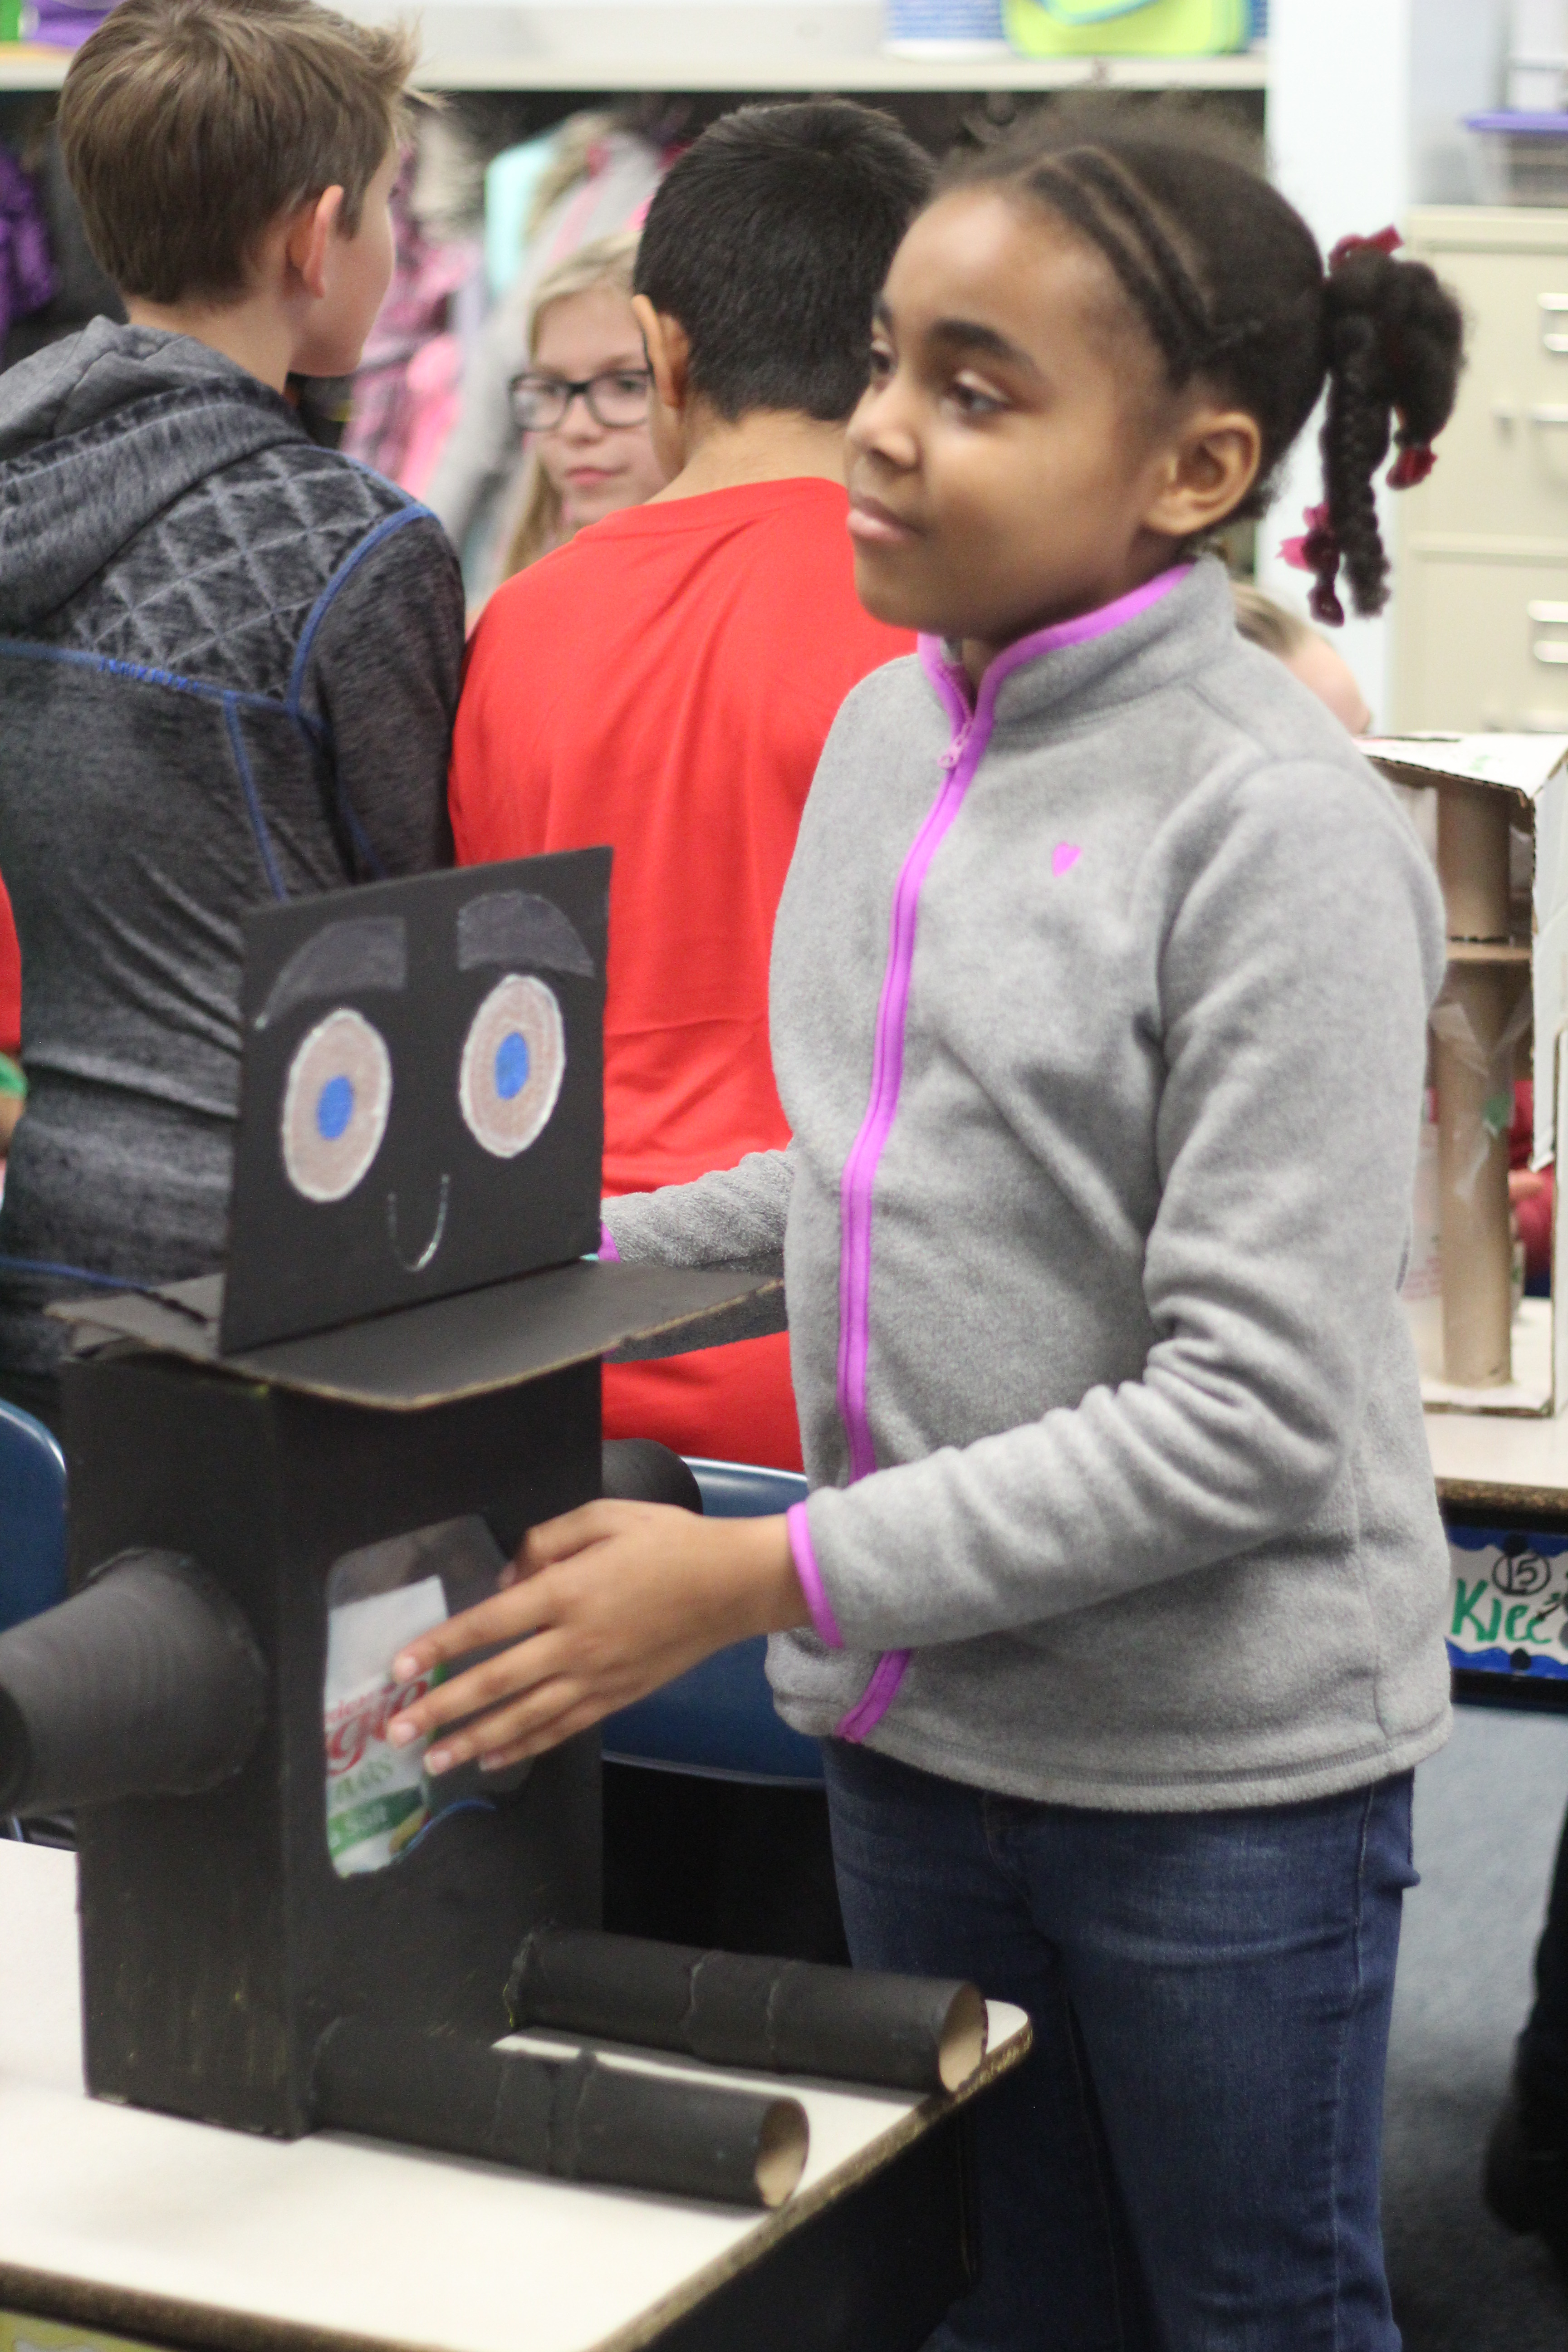 A girl shows what her robot does